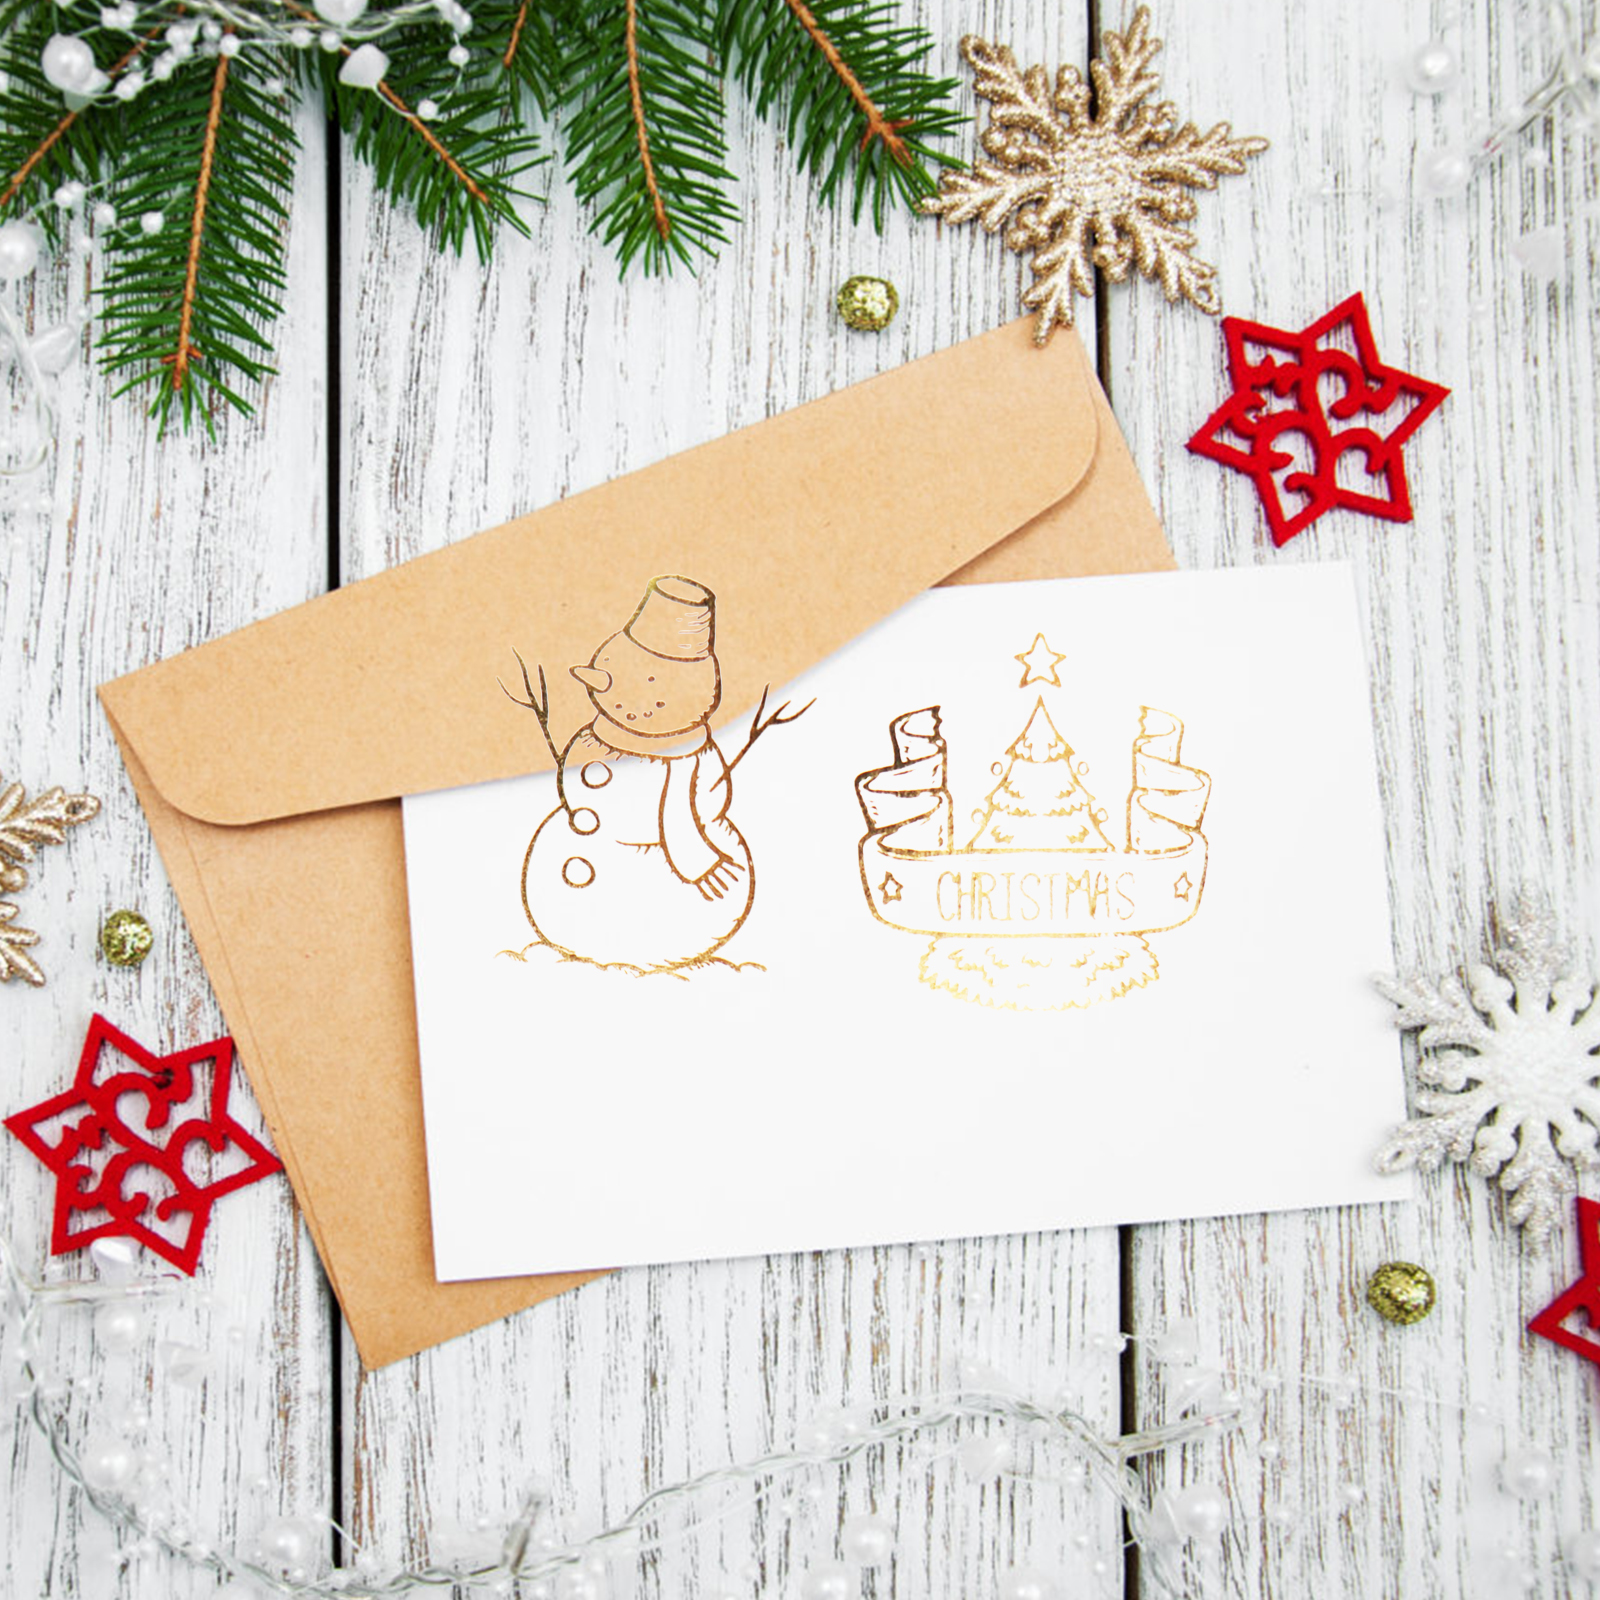 Hot Sale New 3d Hot Santa Claus Stickers Stamping Sticker Gold Rose